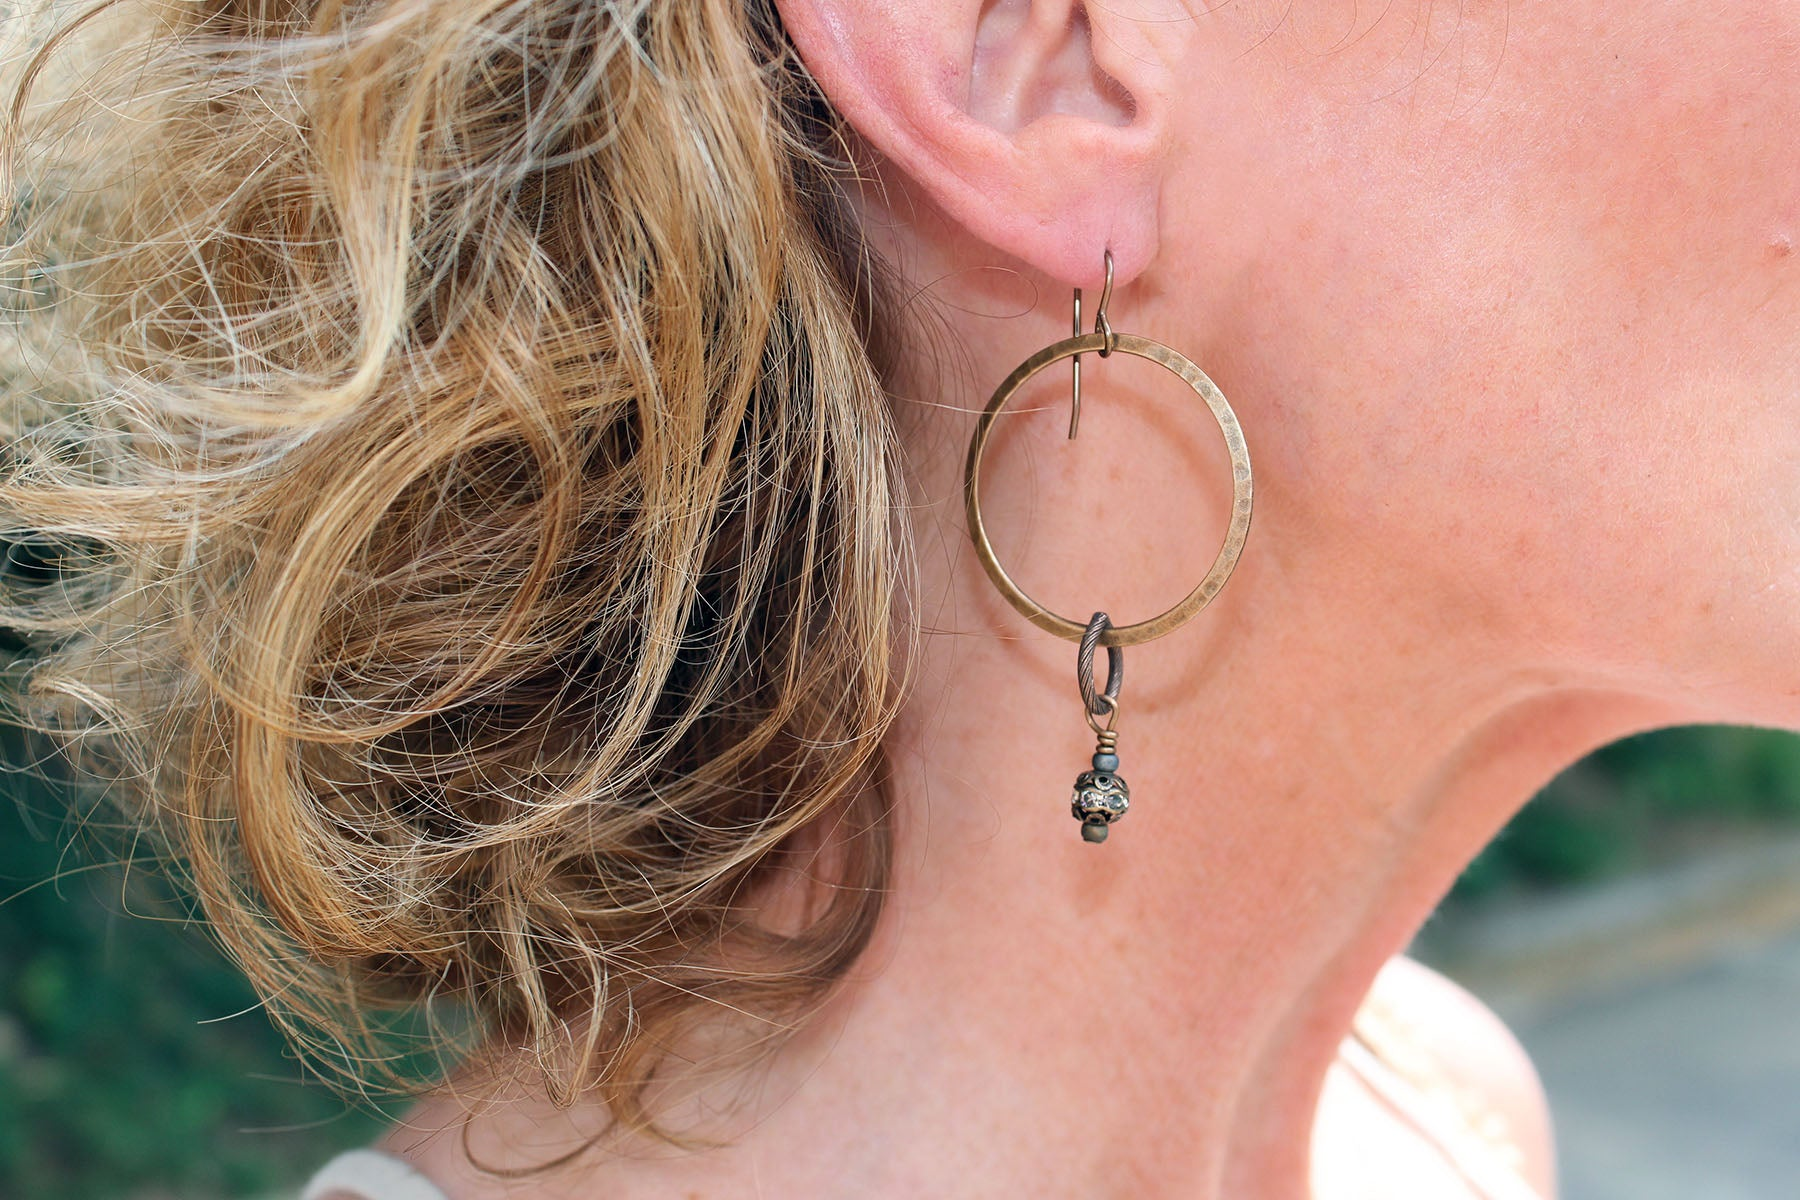 Ronda Smith Earring